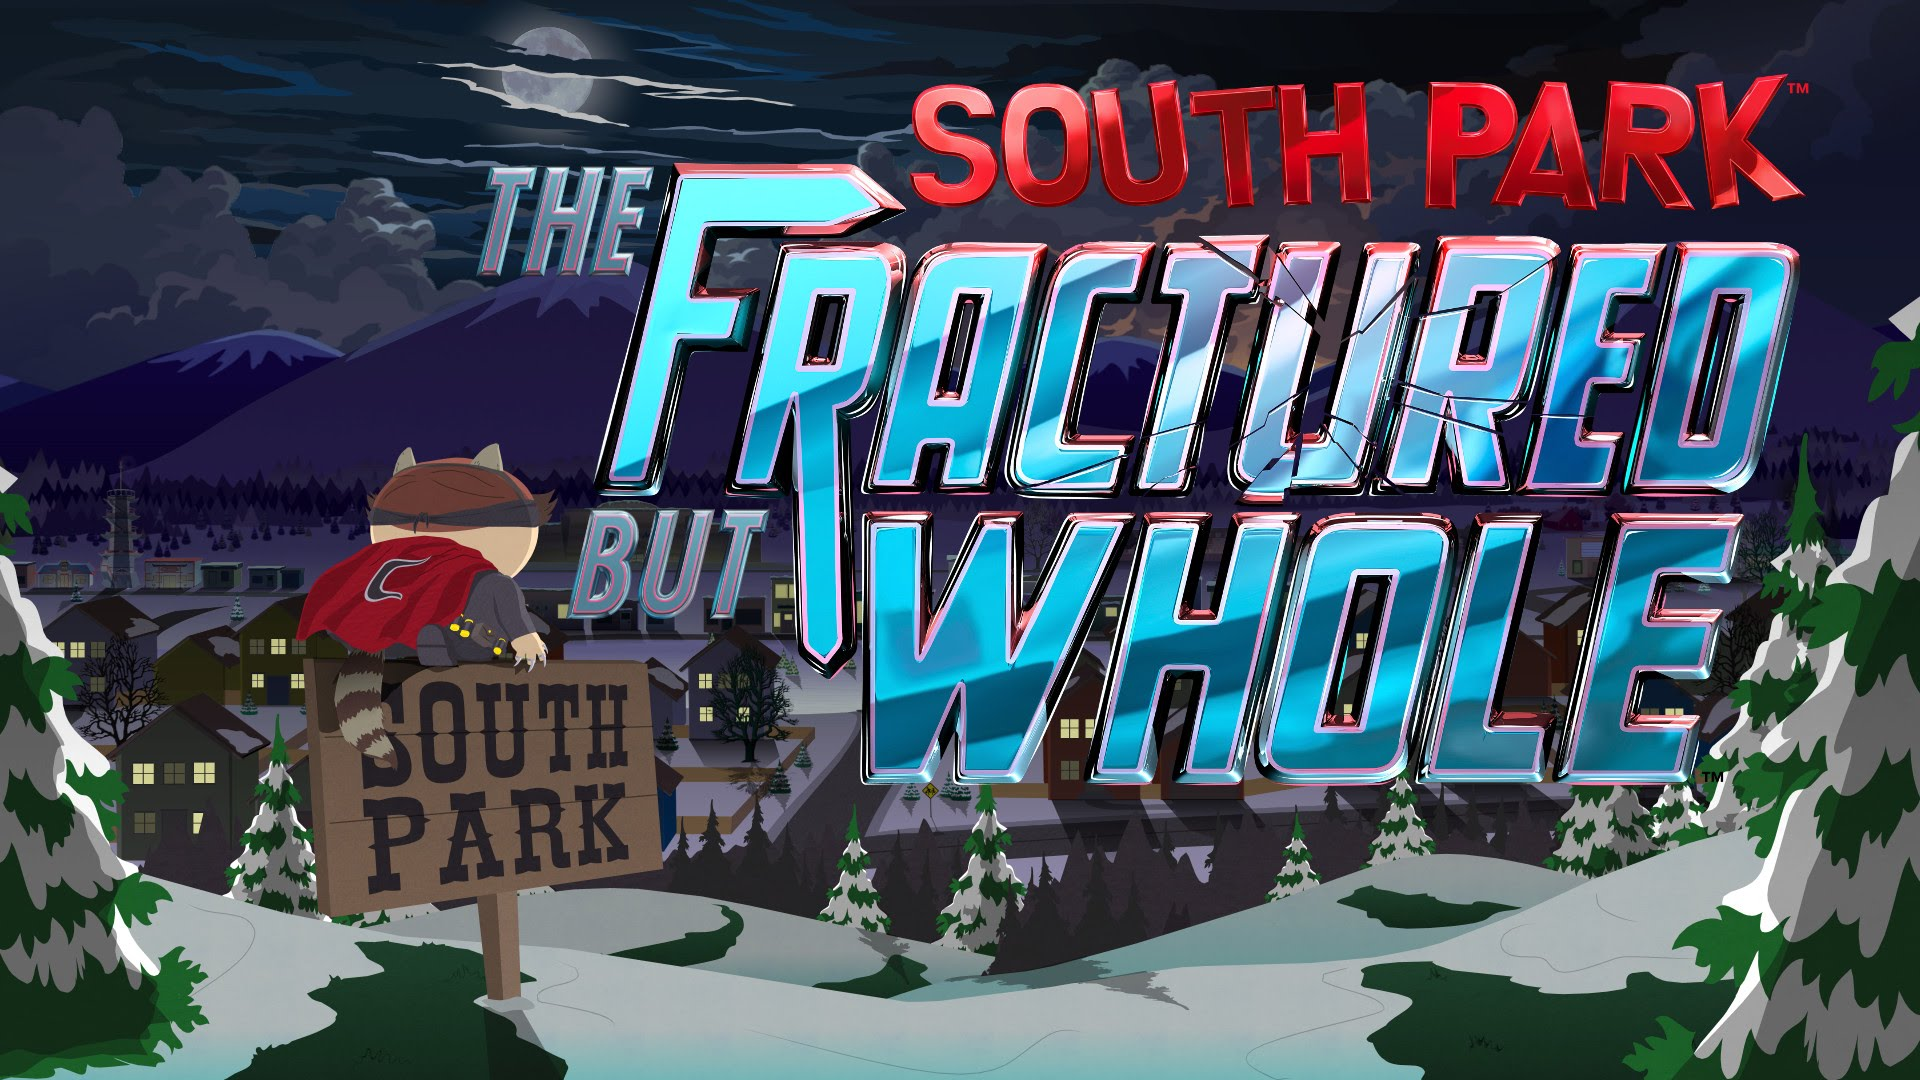 South Park: The Fractured But Whole - 3/31